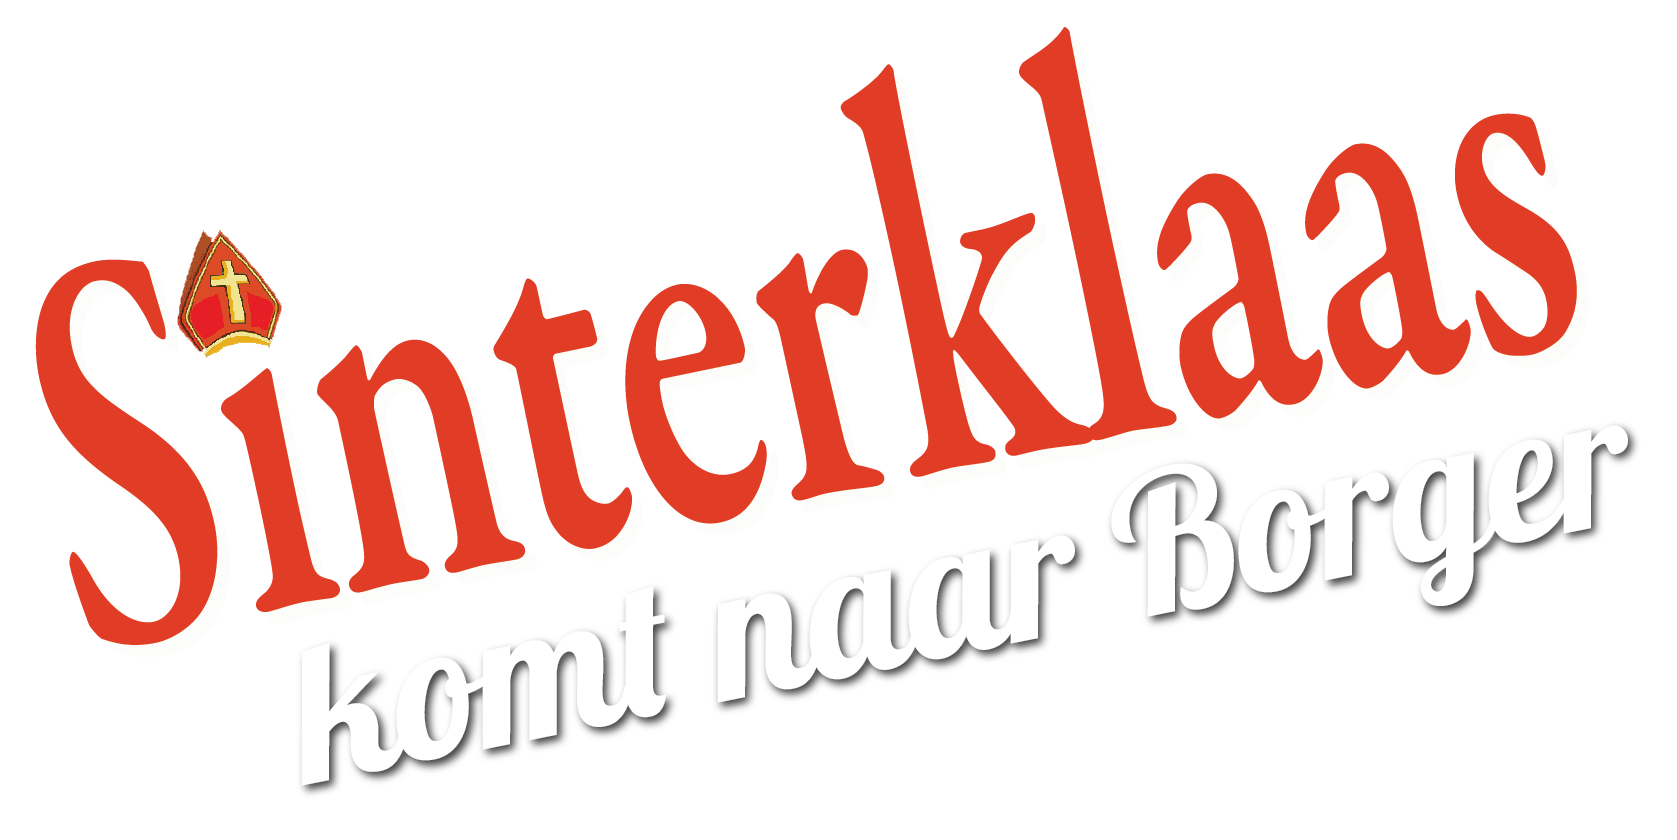 Sint in Borger